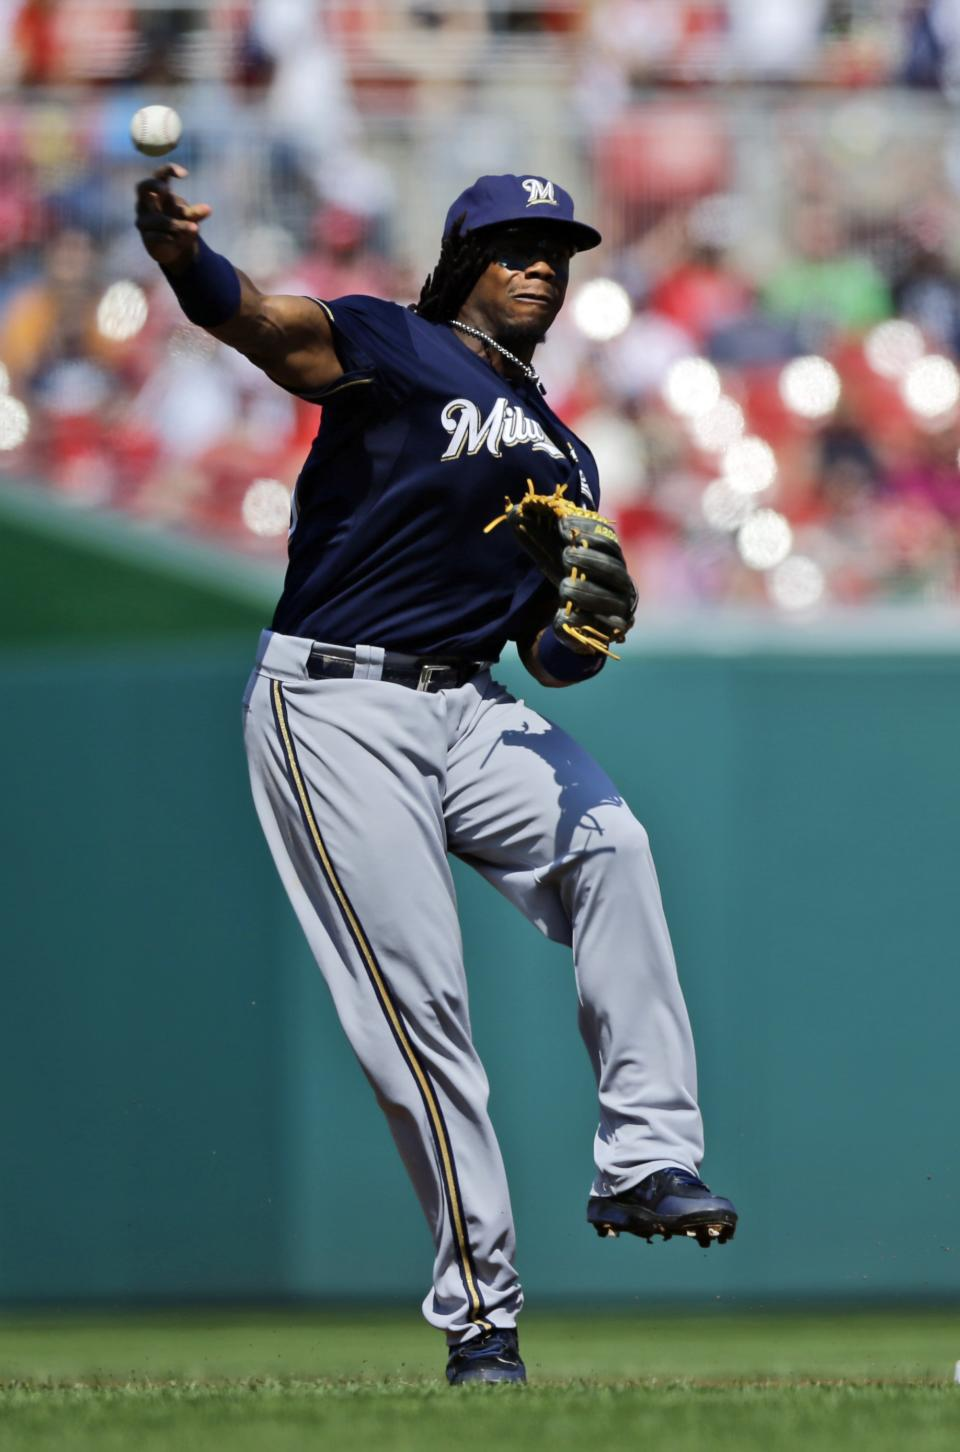 Milwaukee Brewers second baseman Rickie Weeks throws to first but not in time as Washington Nationals' Ryan Zimmerman is safe during the first inning of a baseball game at Nationals Park Saturday, Sept. 22, 2012, in Washington.  (AP Photo/Alex Brandon)